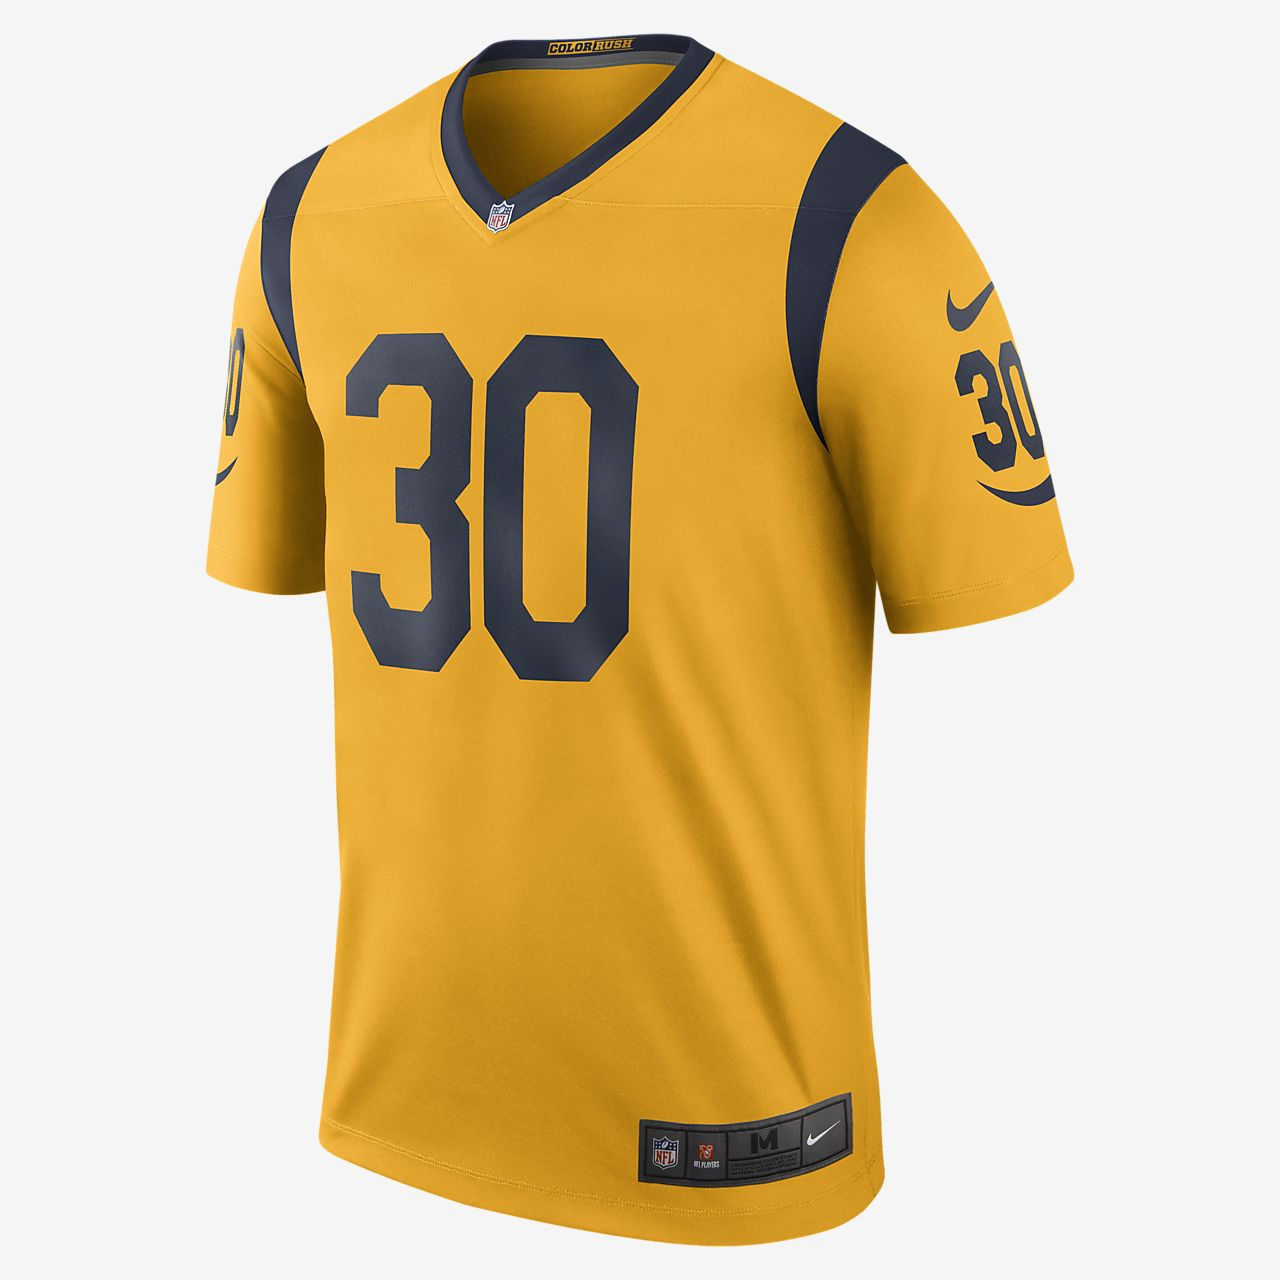 color rush legend jersey